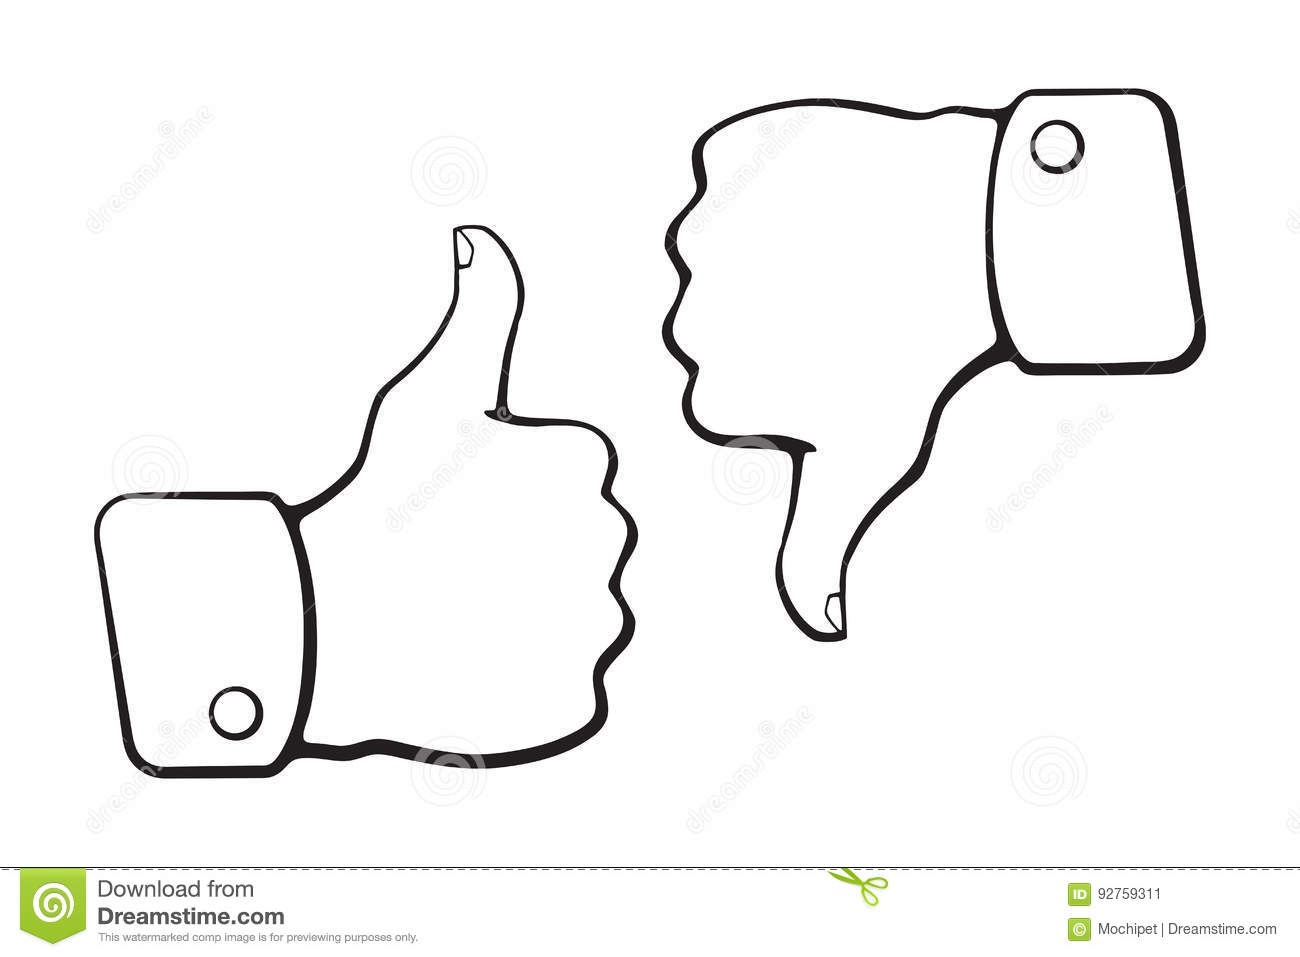 Doodles Of Thumb Up And Thumb Down Symbols Of Like And